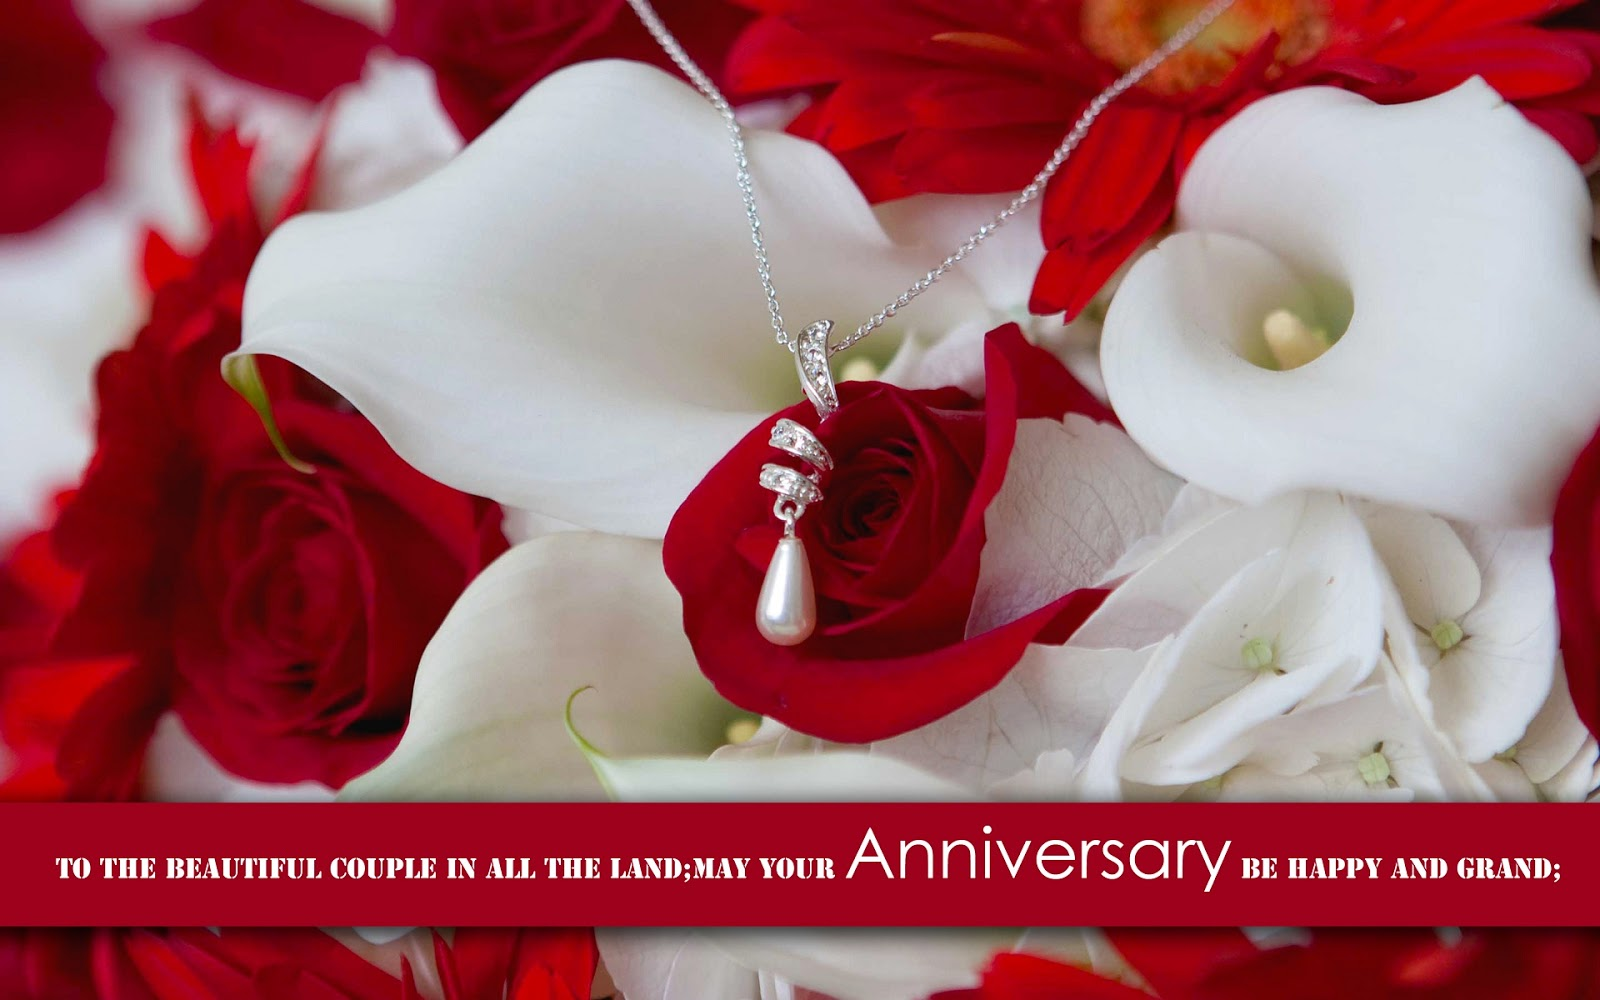 Anniversary wishes for facebook